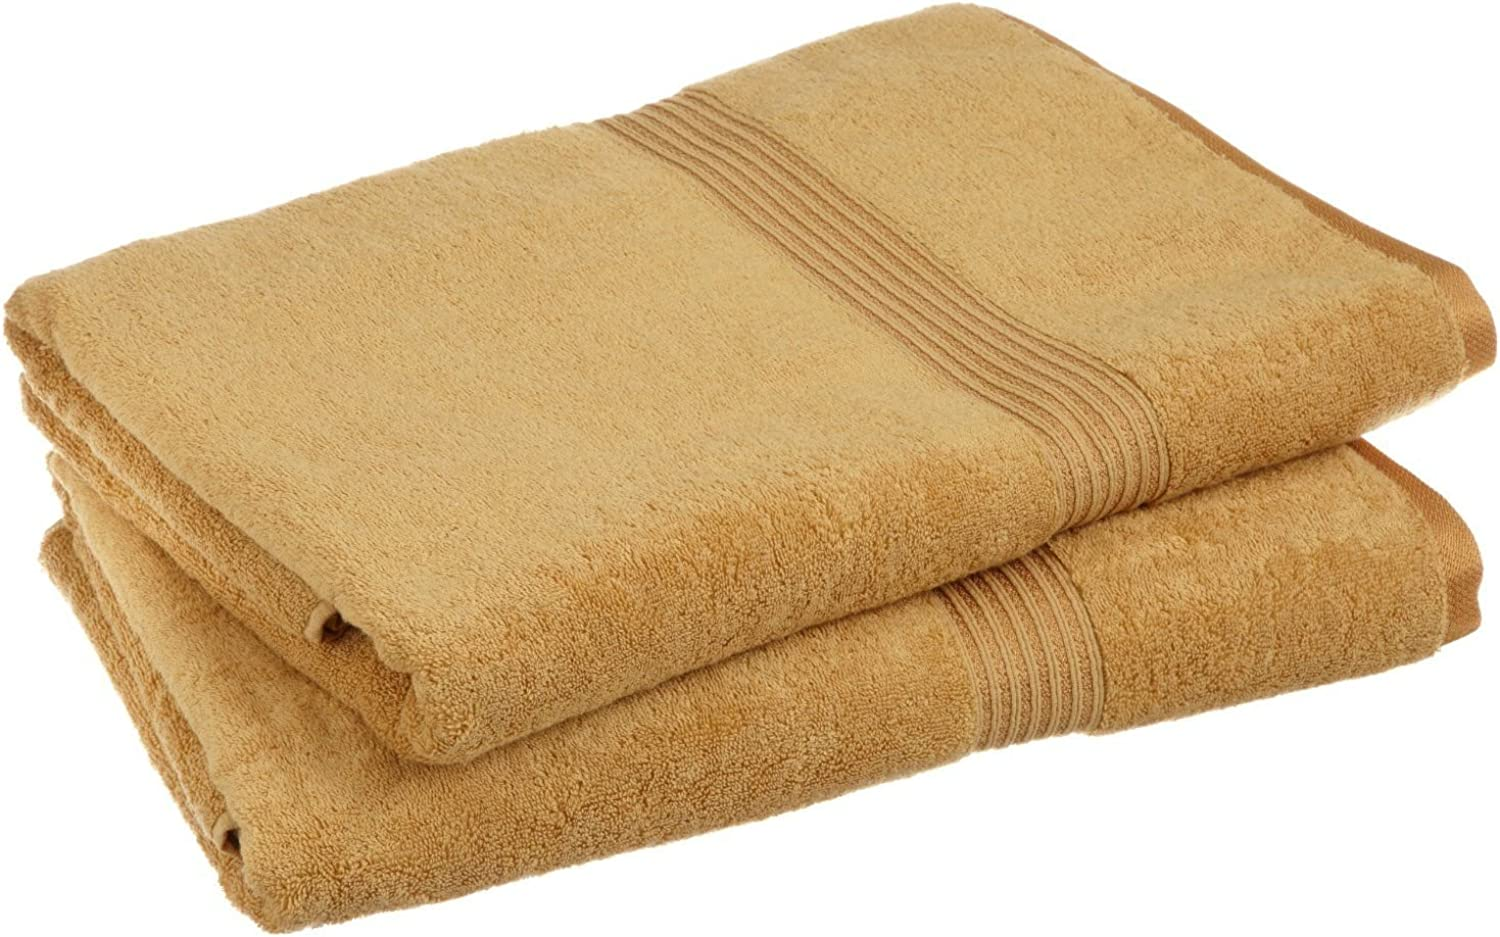 Superior 100% Egyptian Cotton Solid Bath Sheet Set, gold, 2-Piece